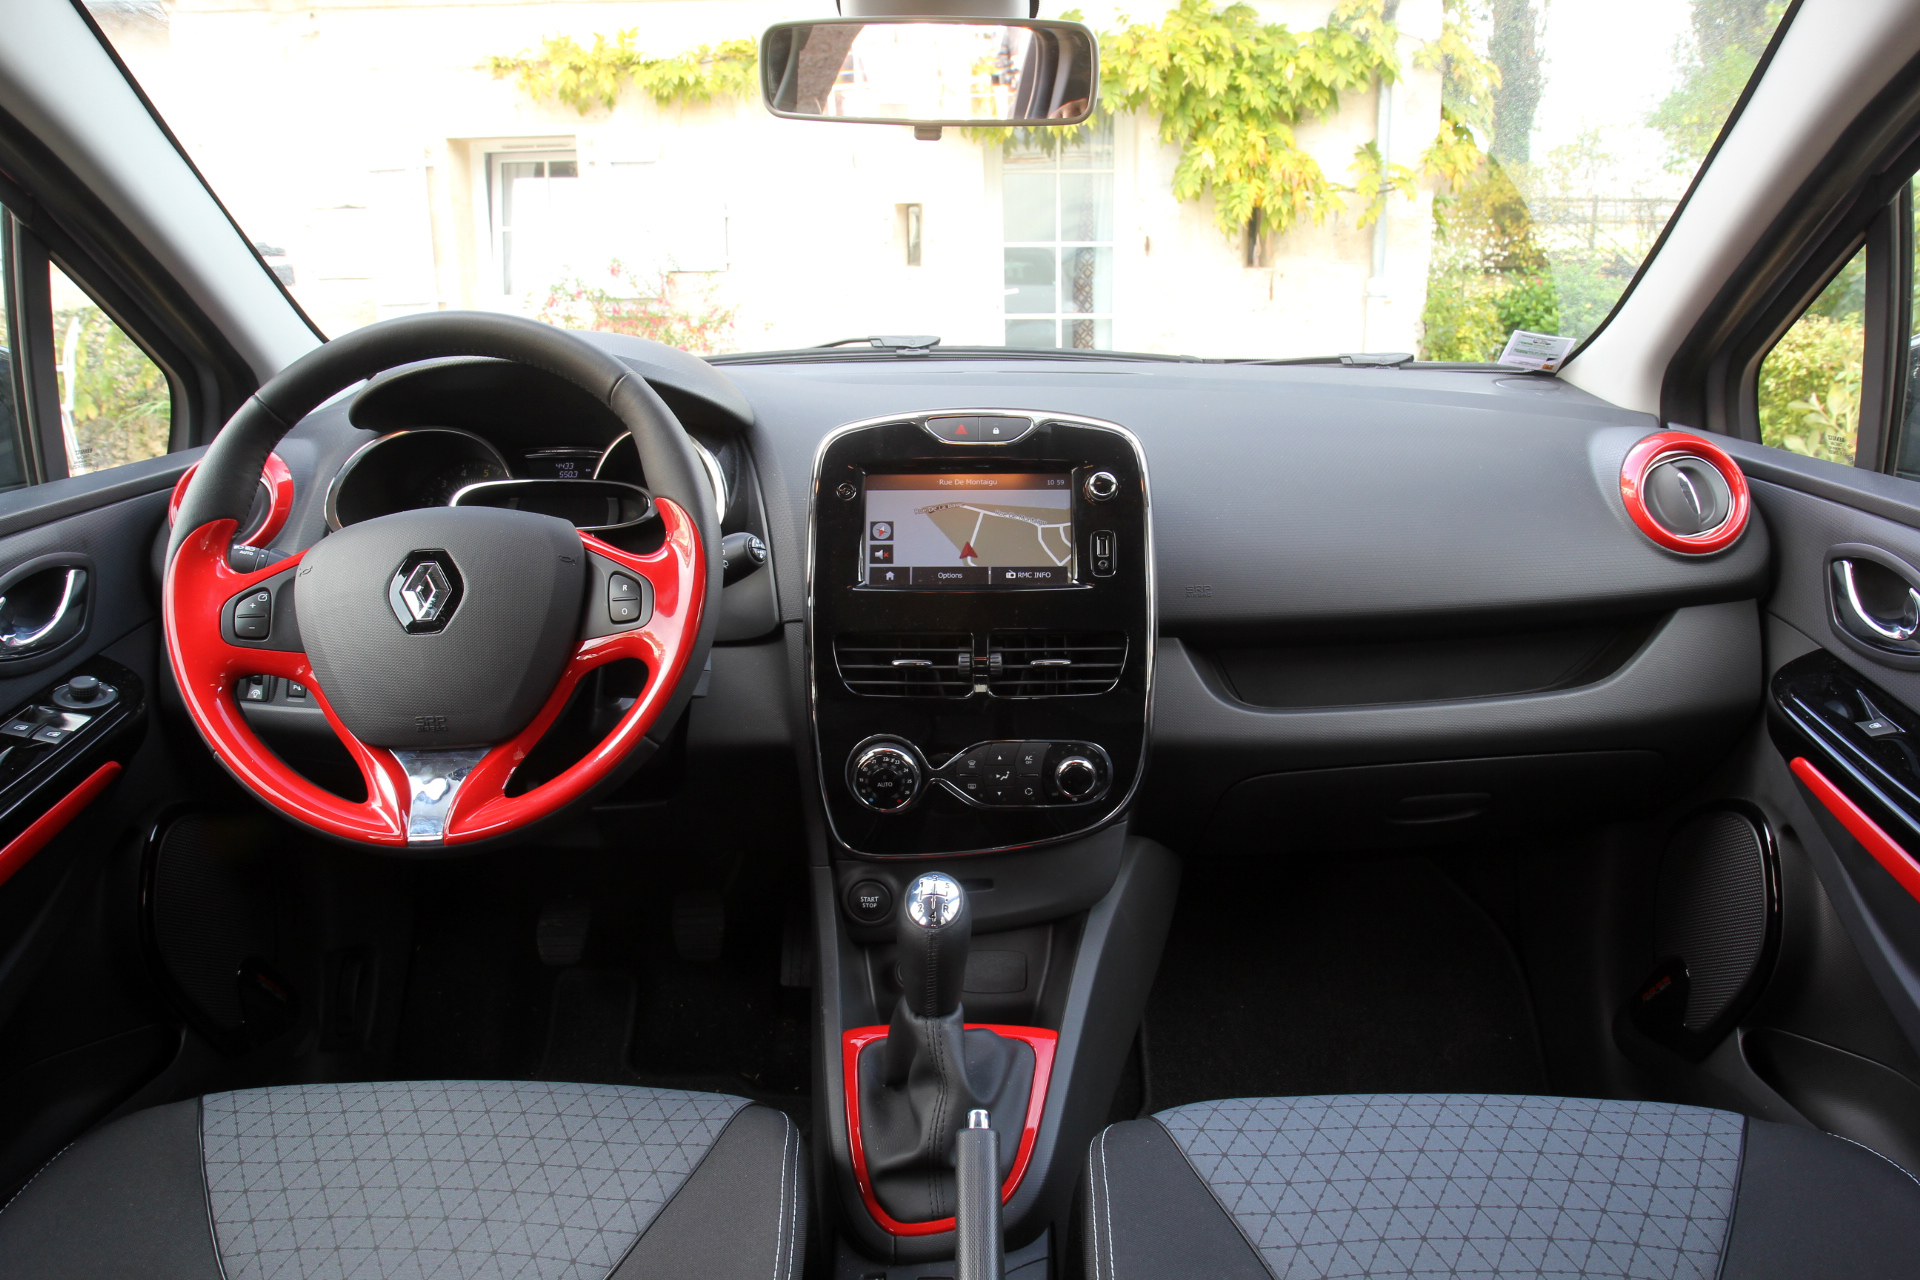 comparatif vid o peugeot 208 renault clio vw polo supr matie en jeu. Black Bedroom Furniture Sets. Home Design Ideas